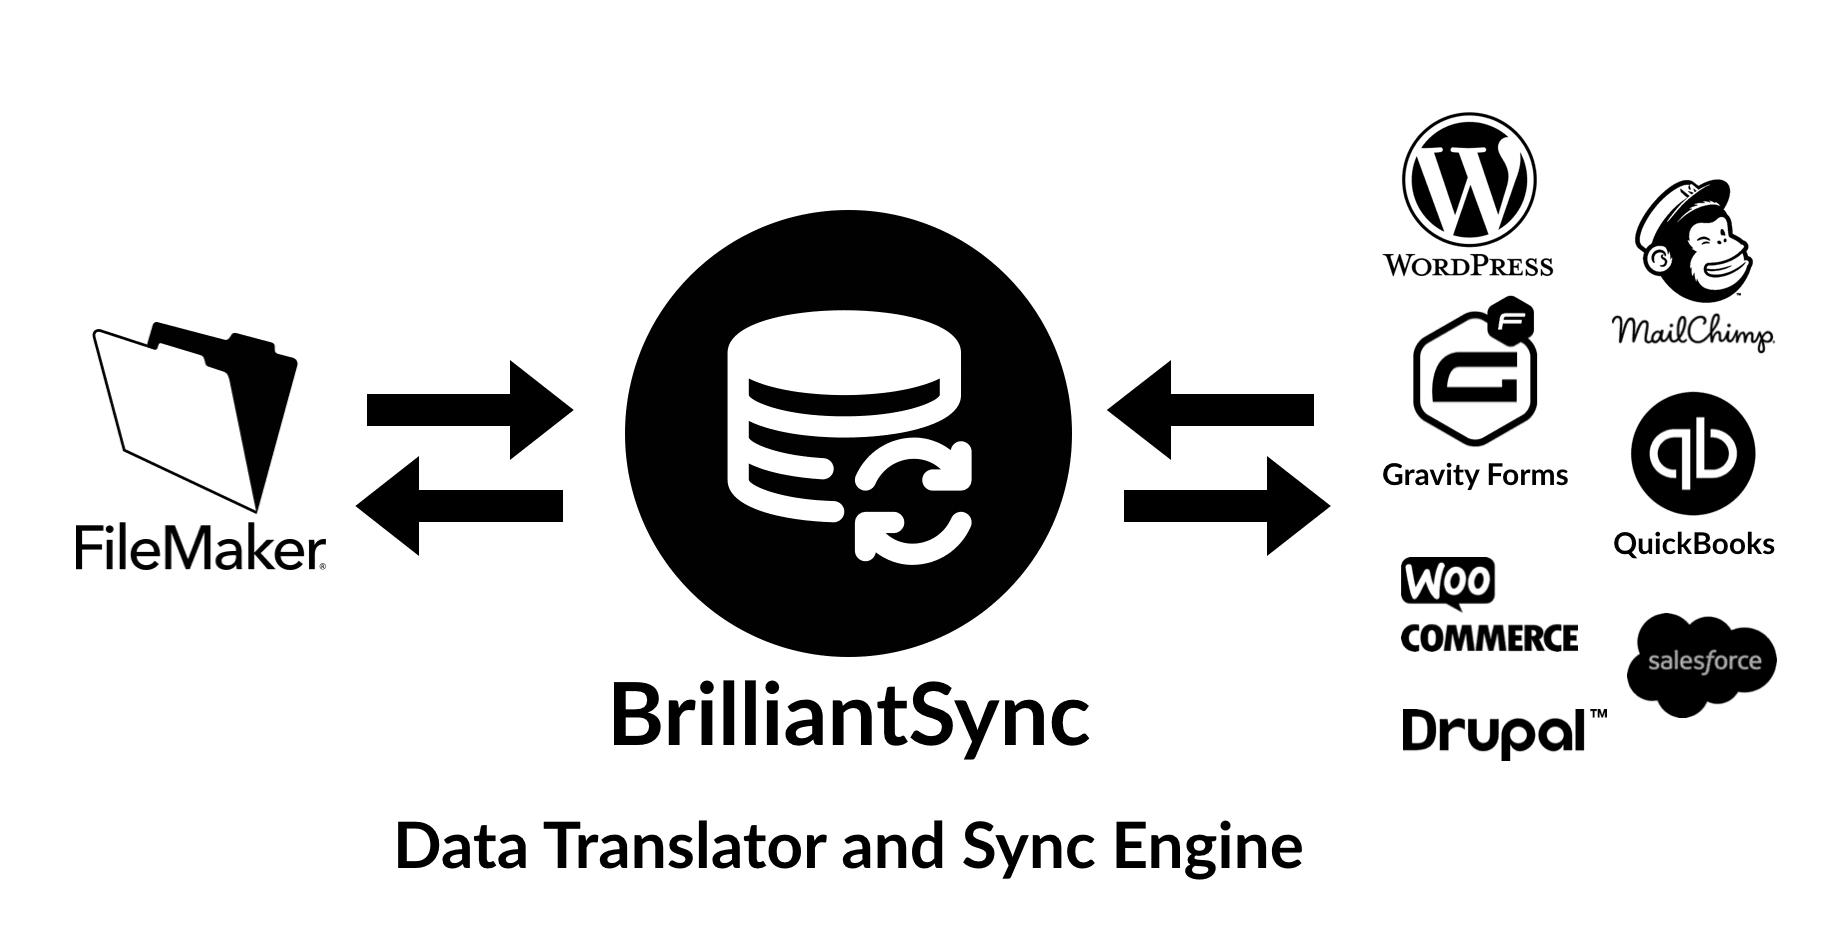 BrilliantSync - Data Translator and Sync Engine